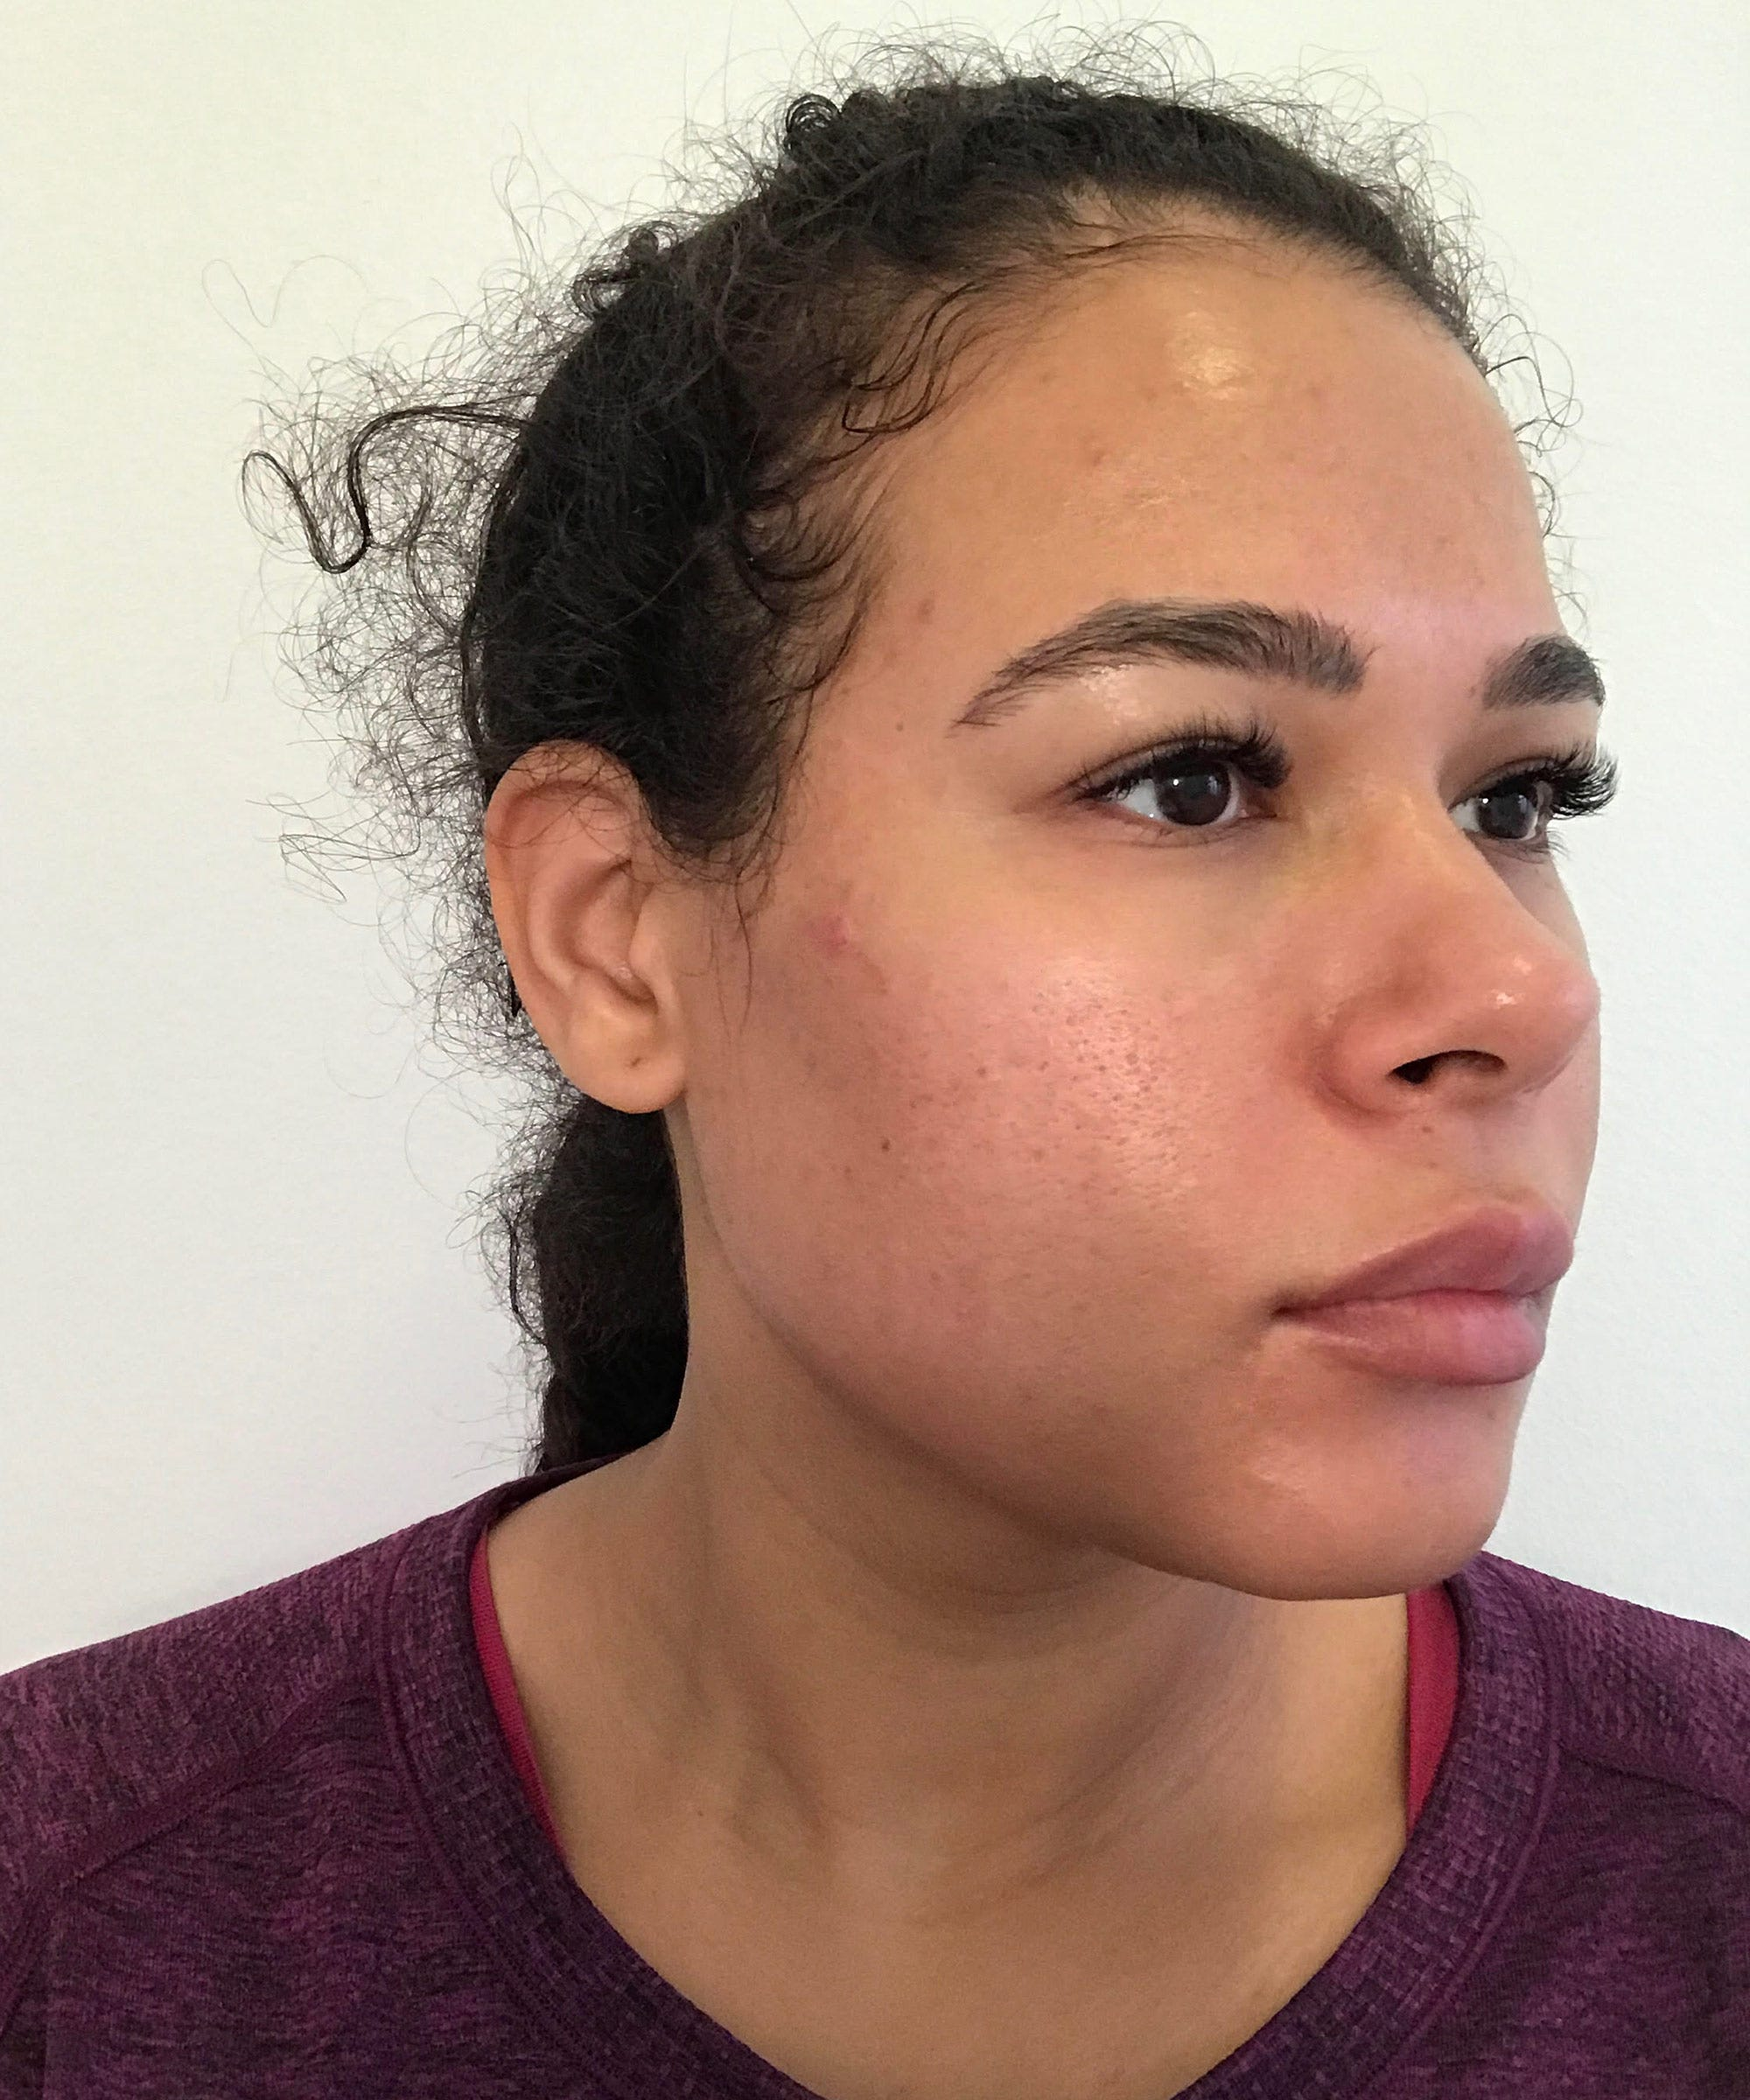 918a06d11d6 How 30 Days Of No Alcohol Helped My Skin Problems